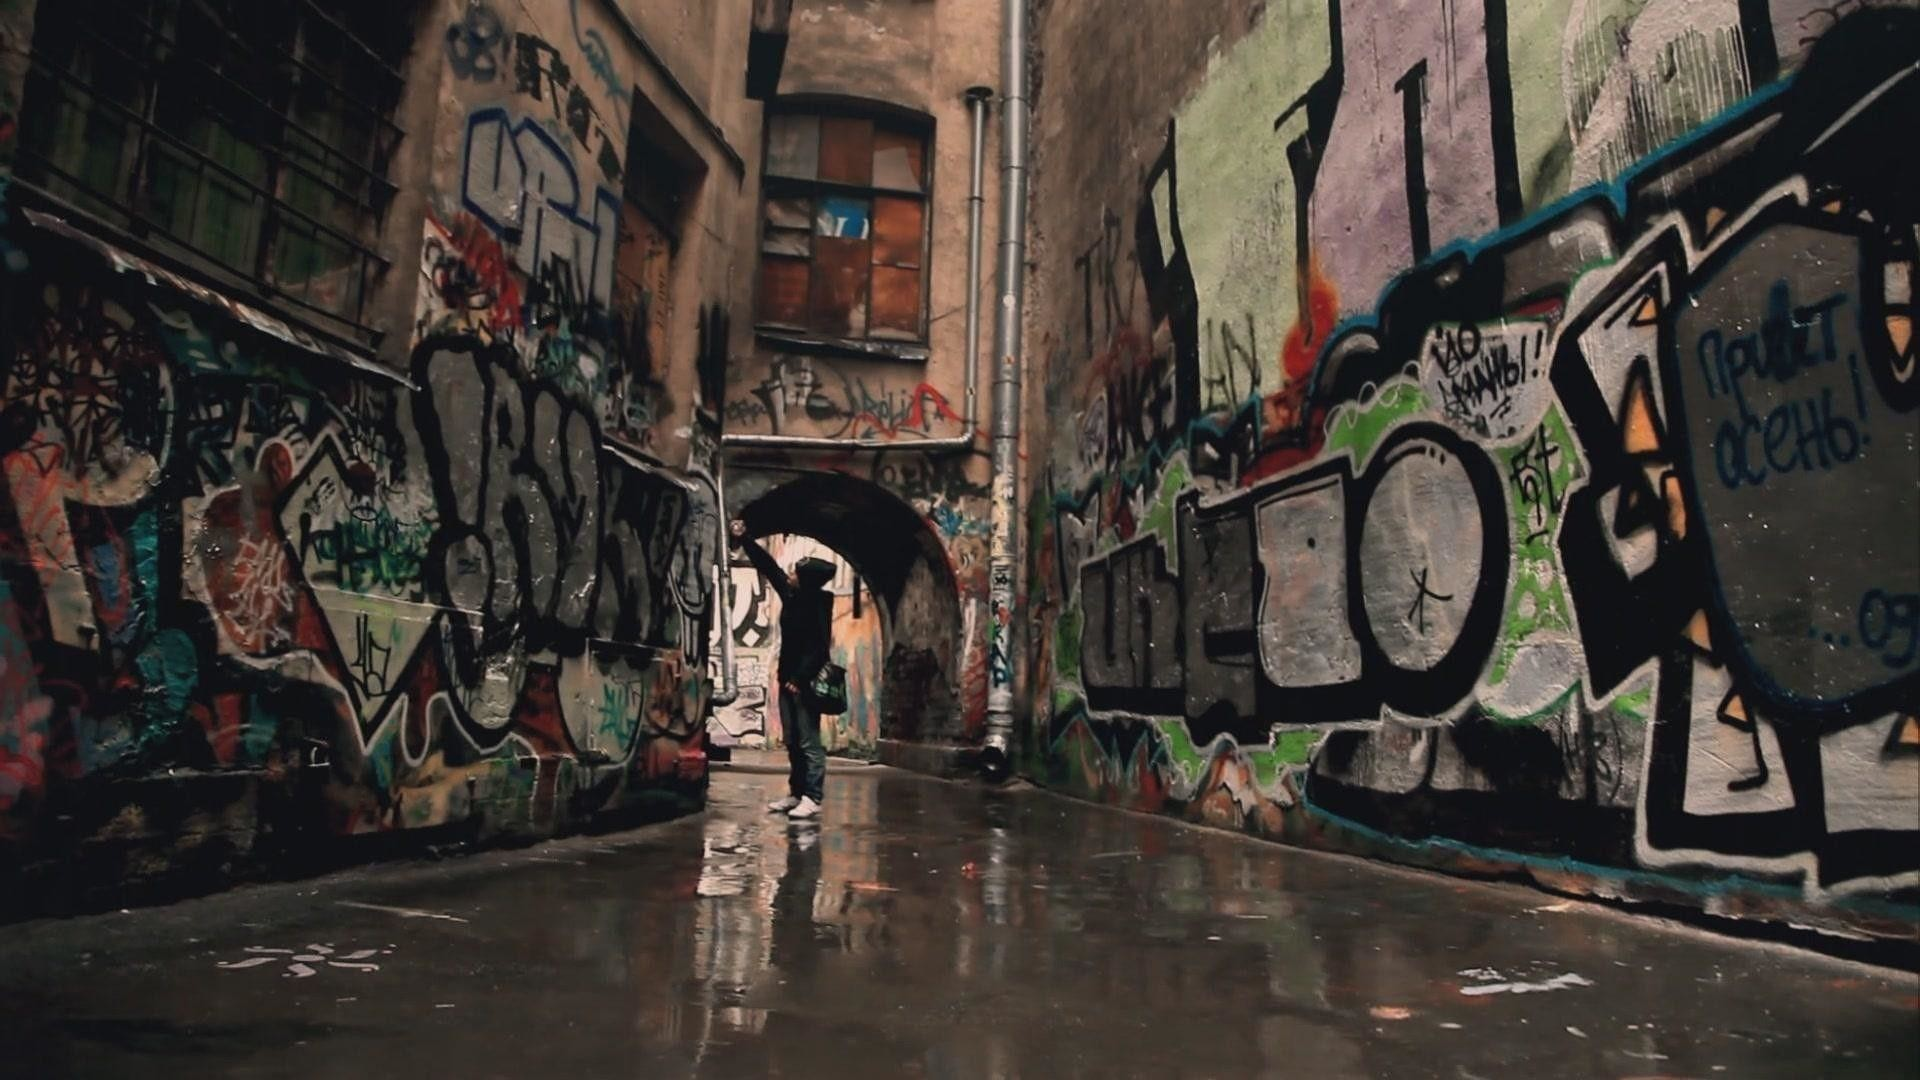 1920x1080 walls-art-graffiti-artistic-free_322928 graffiti wallpaper HD free .